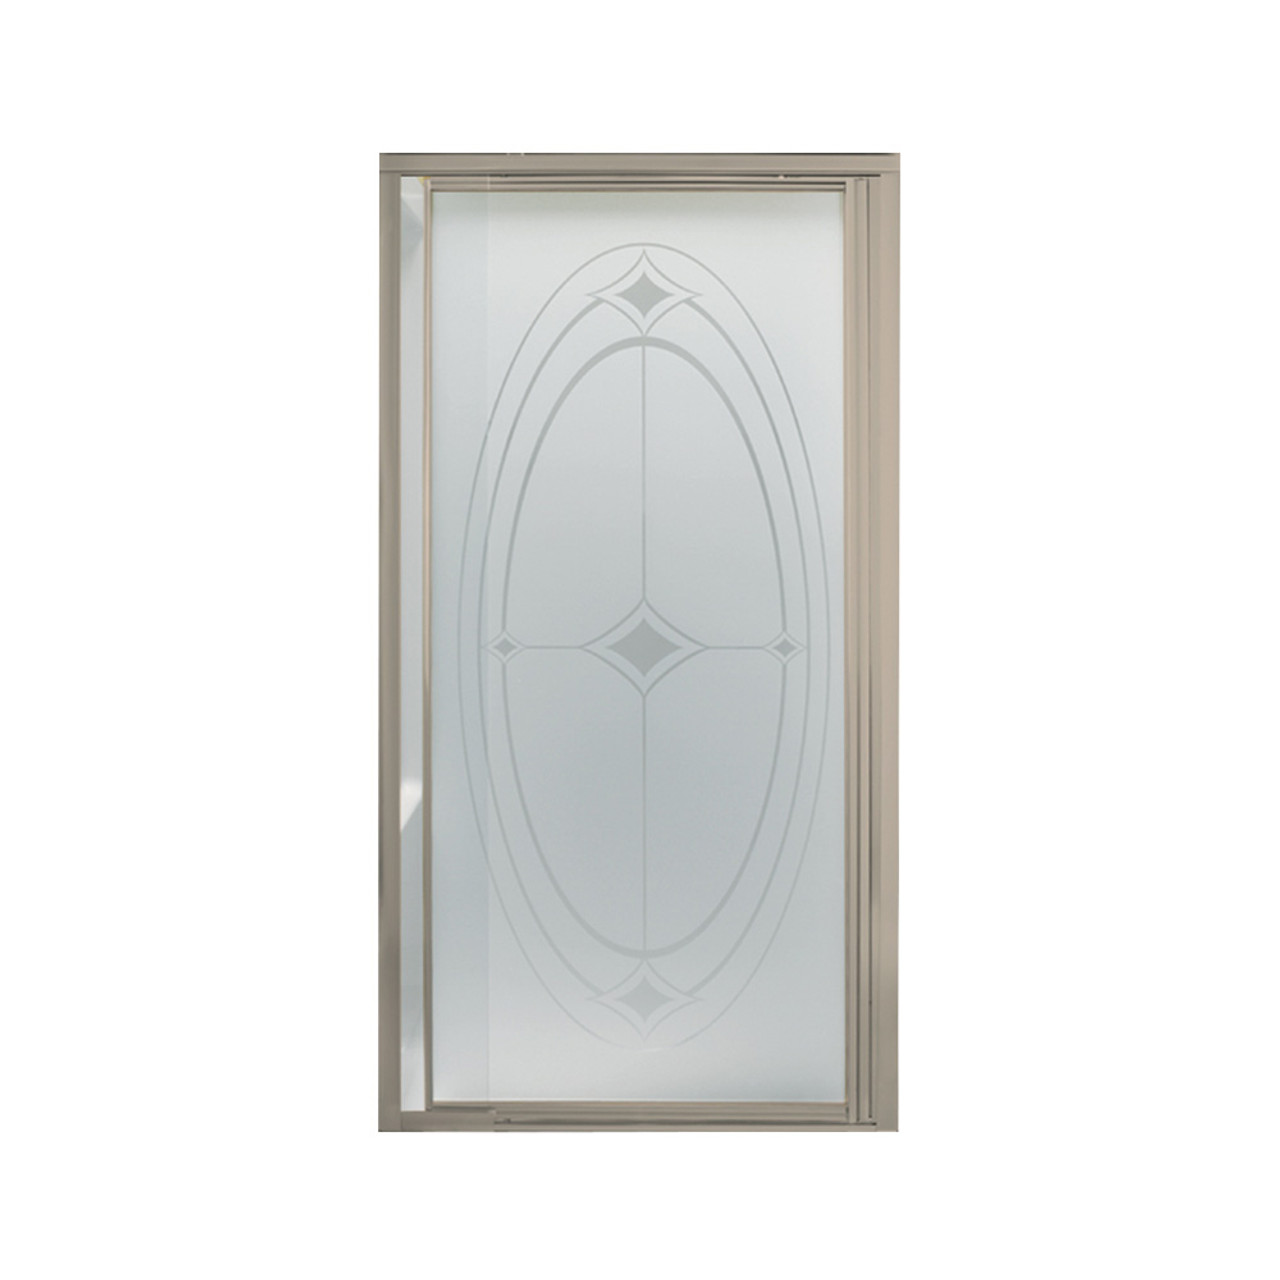 Sterling 1505d 36n G07 Vista Pivot Ii 31 1 4 In X 36 In Framed Alcove Shower Door With Ellipse Glass